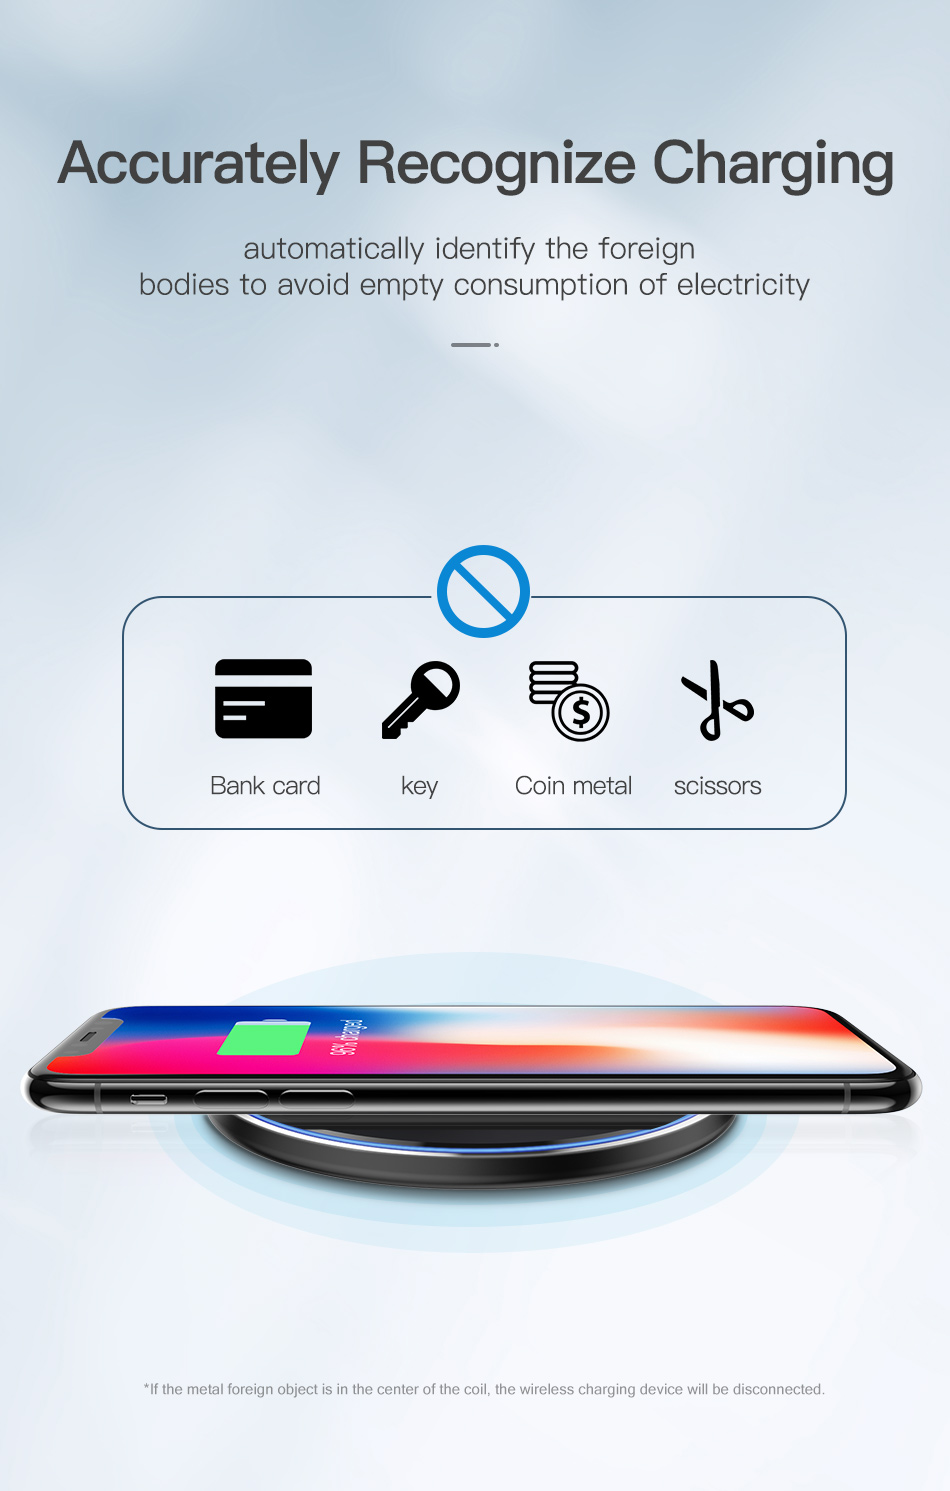 estore kart electronics new arrival mobile accessories Mirror Wireless Charging Pad accurate